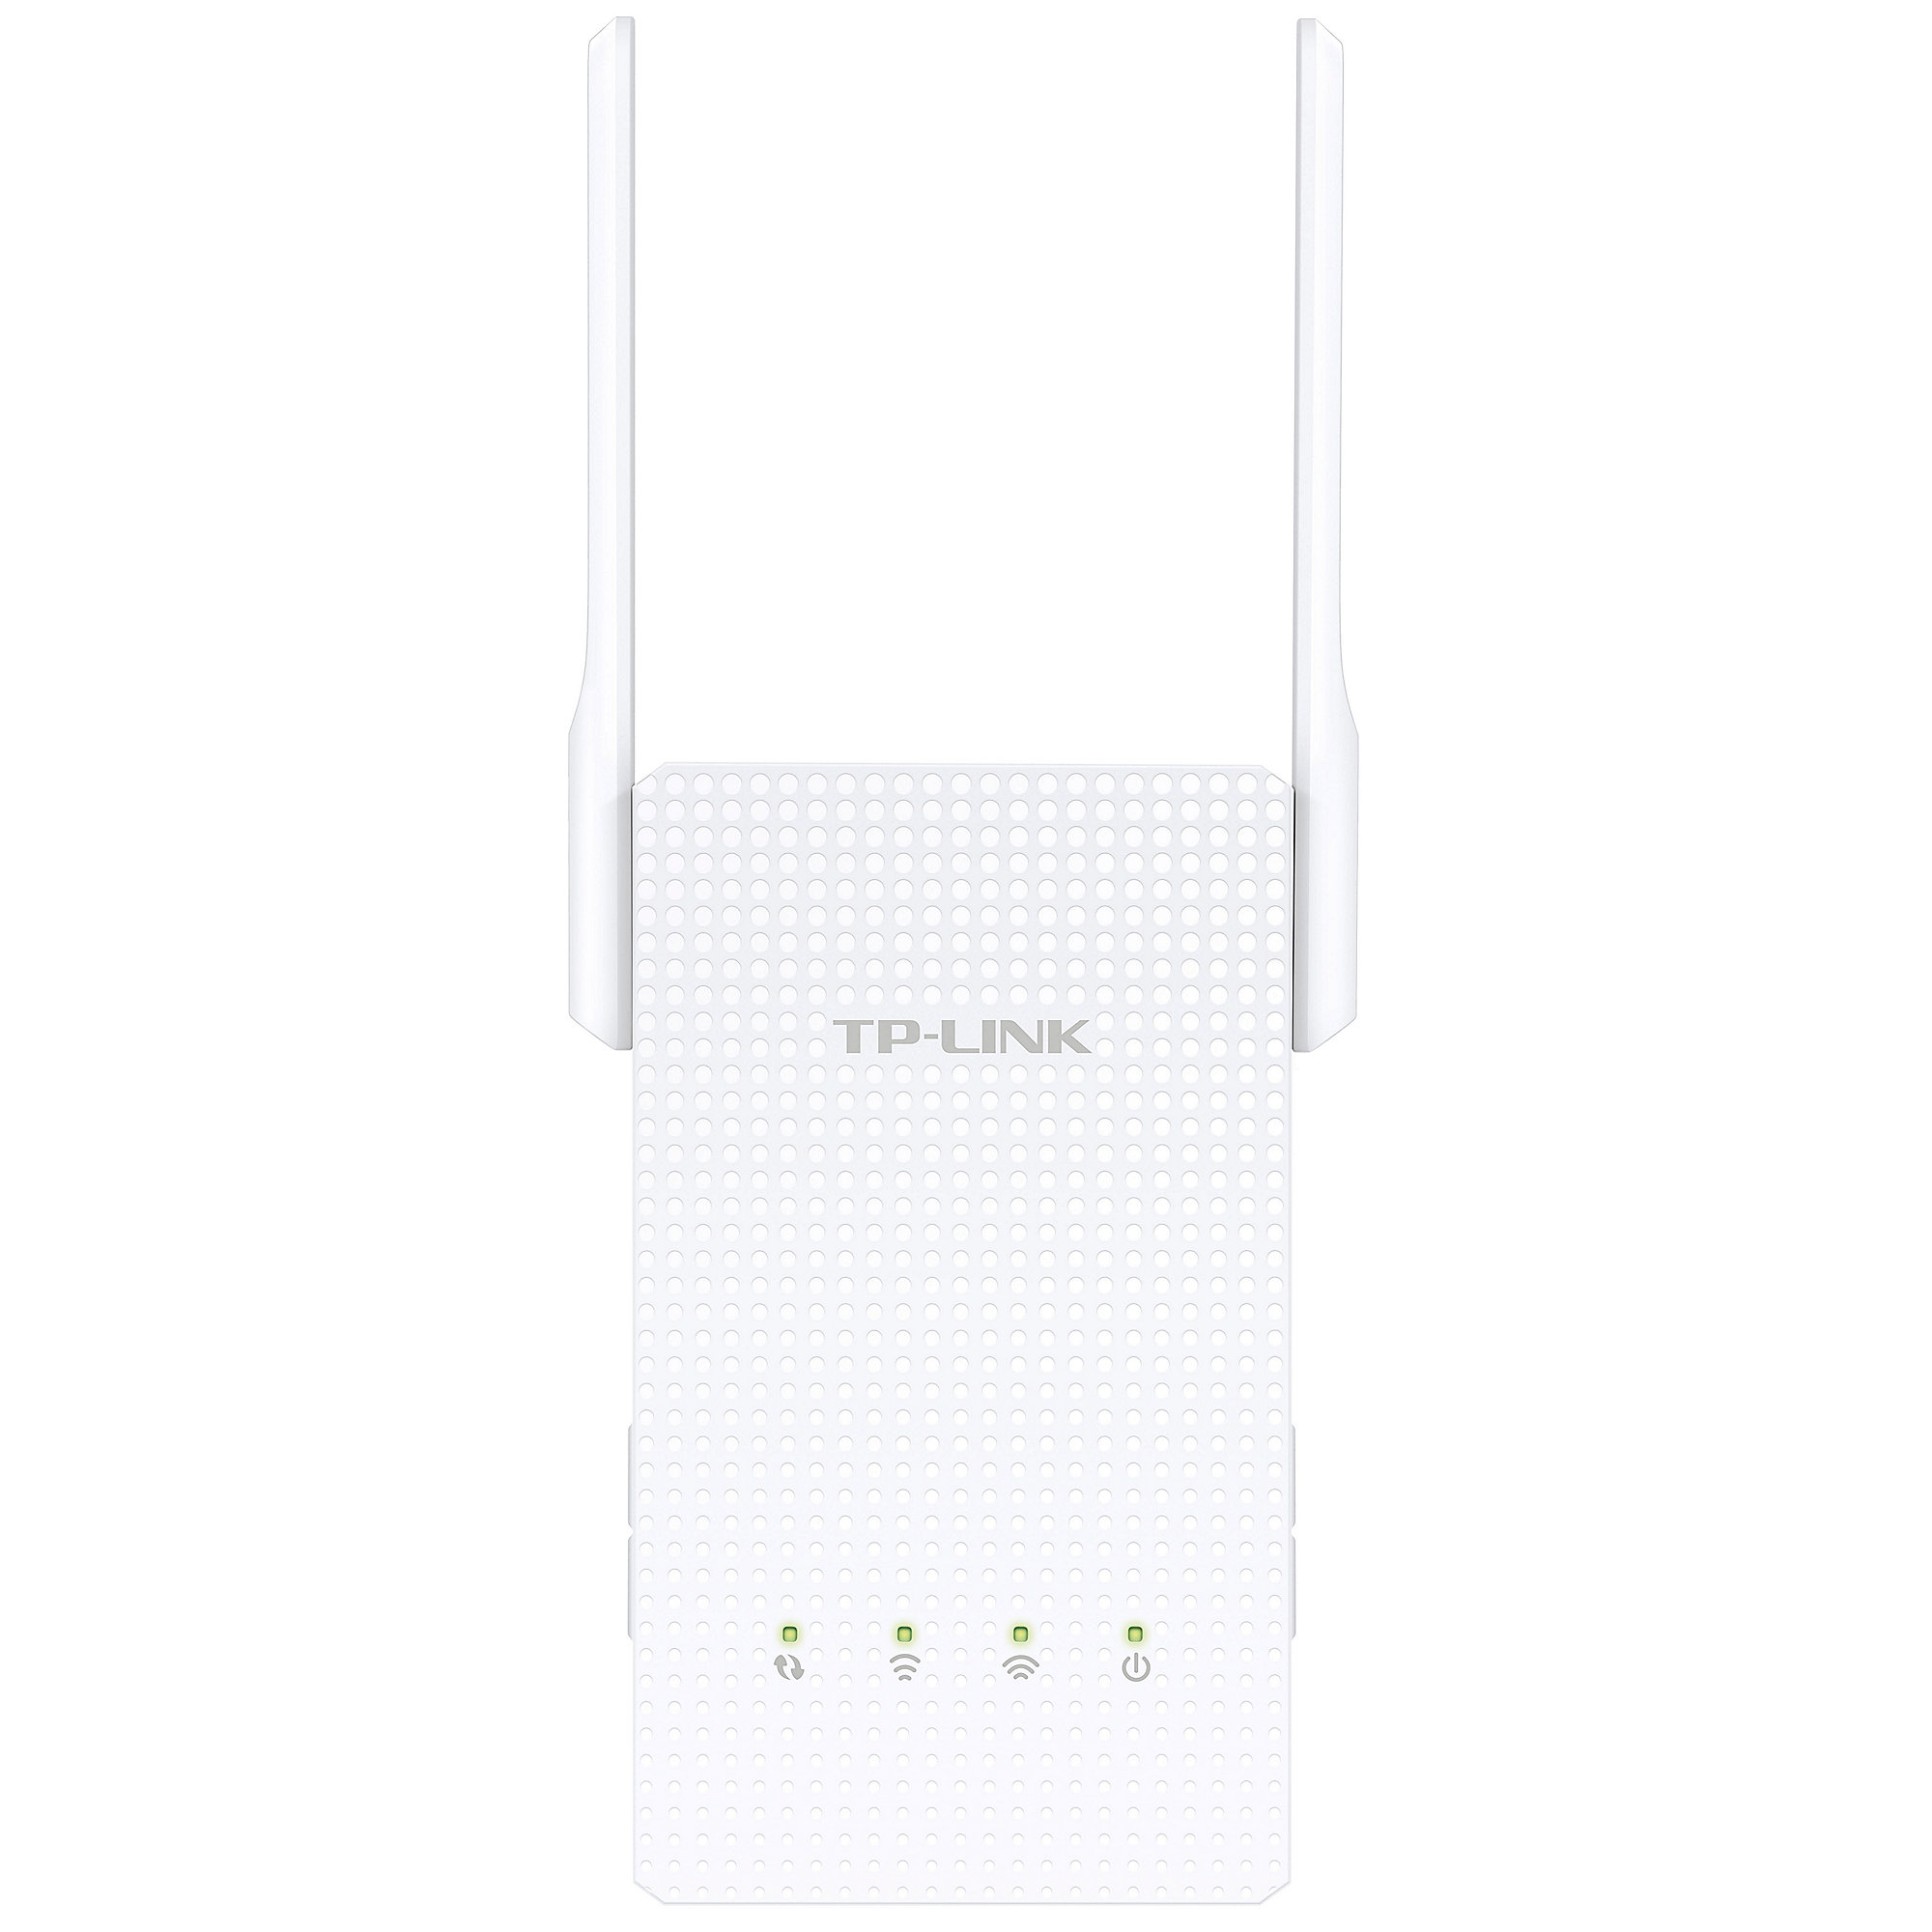 TP-LINK AC750 RE210 750MBit Universeller WLAN-ac Repeater mit LAN Port